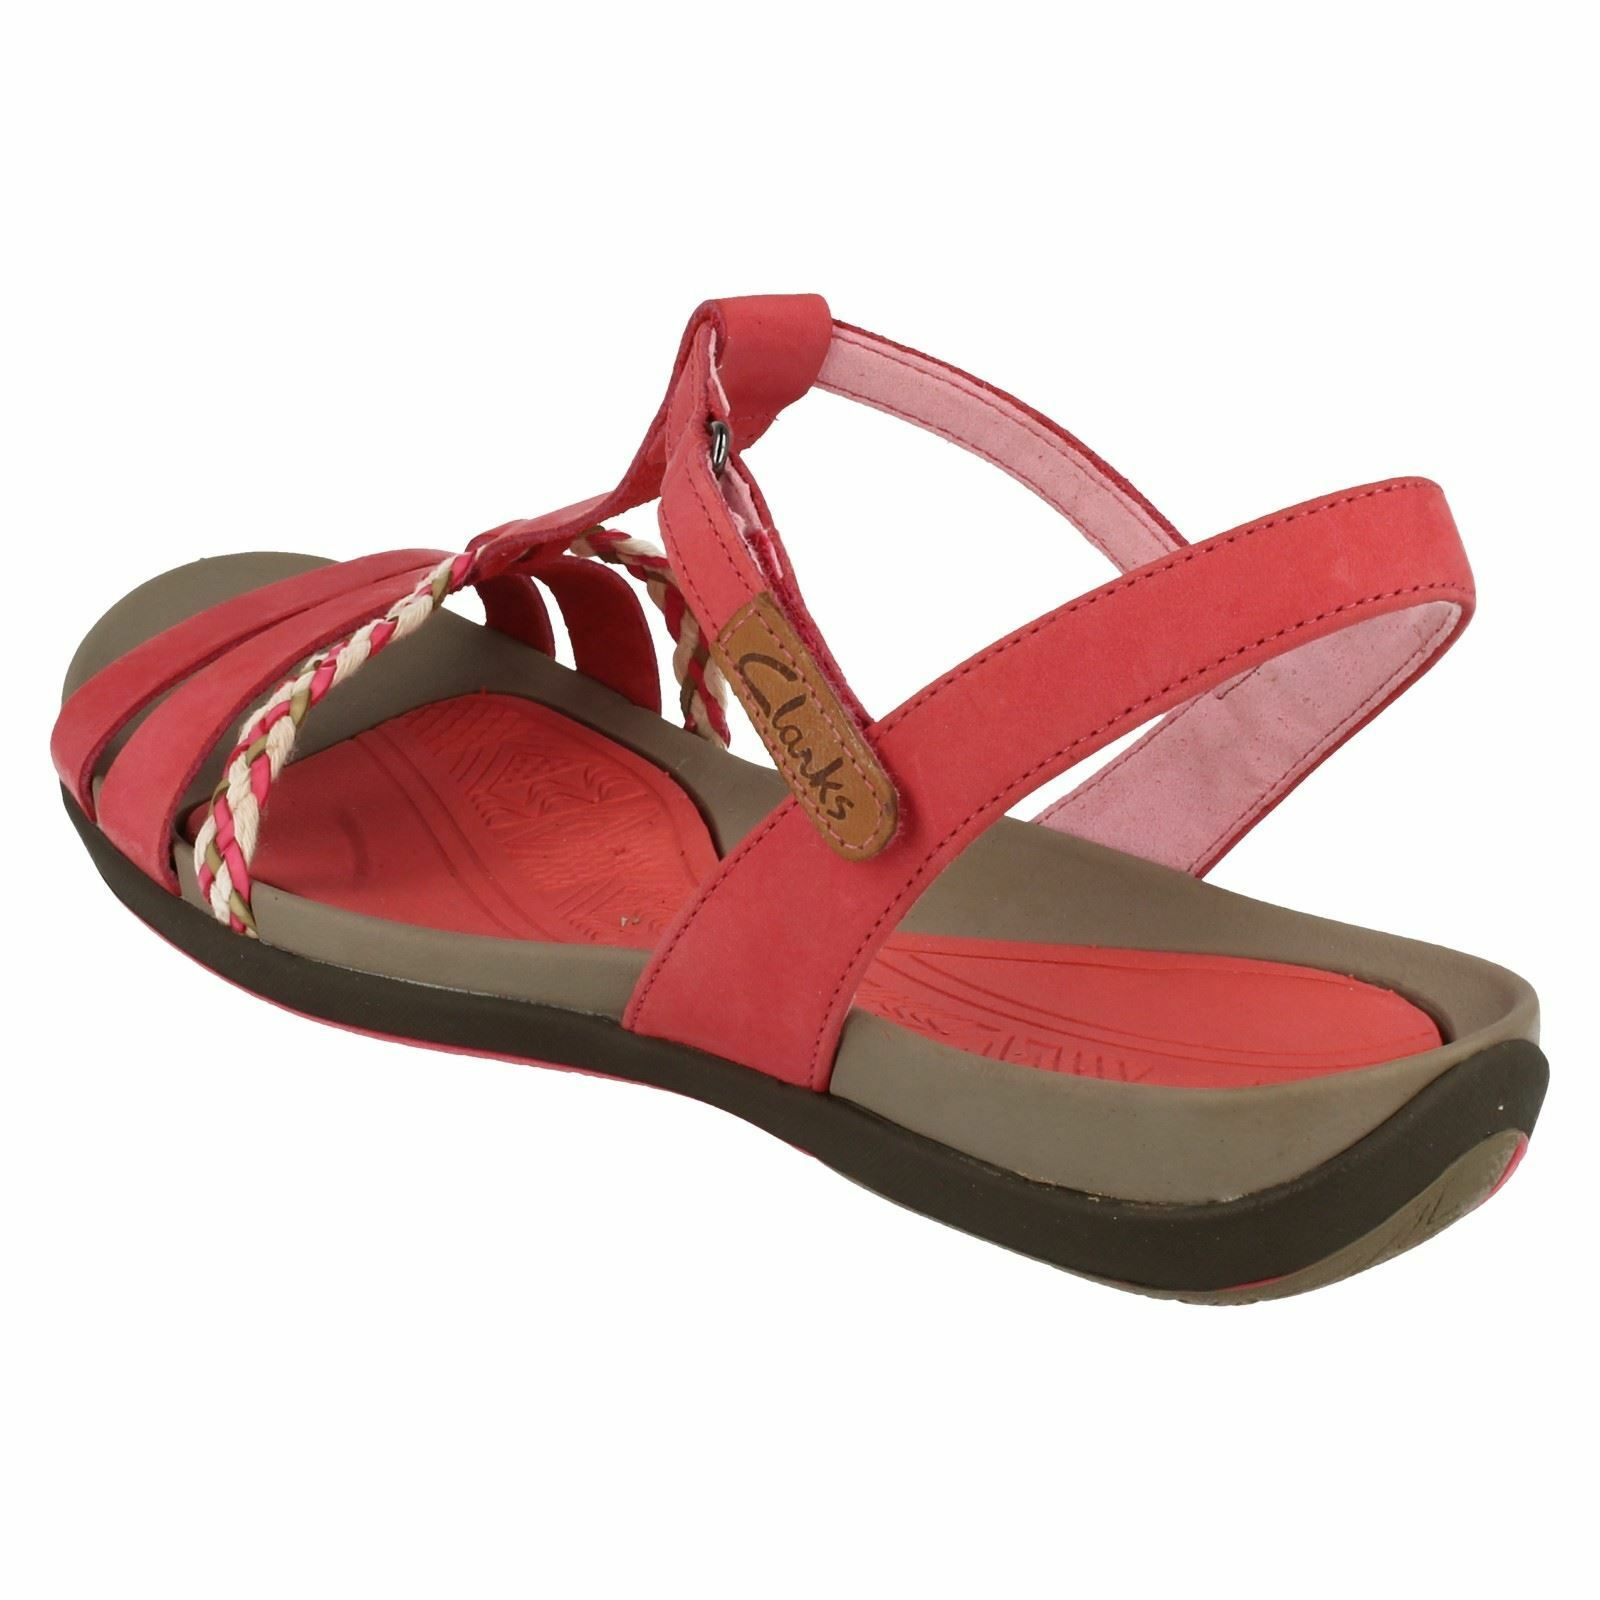 ladies CLARKS TEALITE D GRACE womens SANDALS size 3 D TEALITE new red a177a1